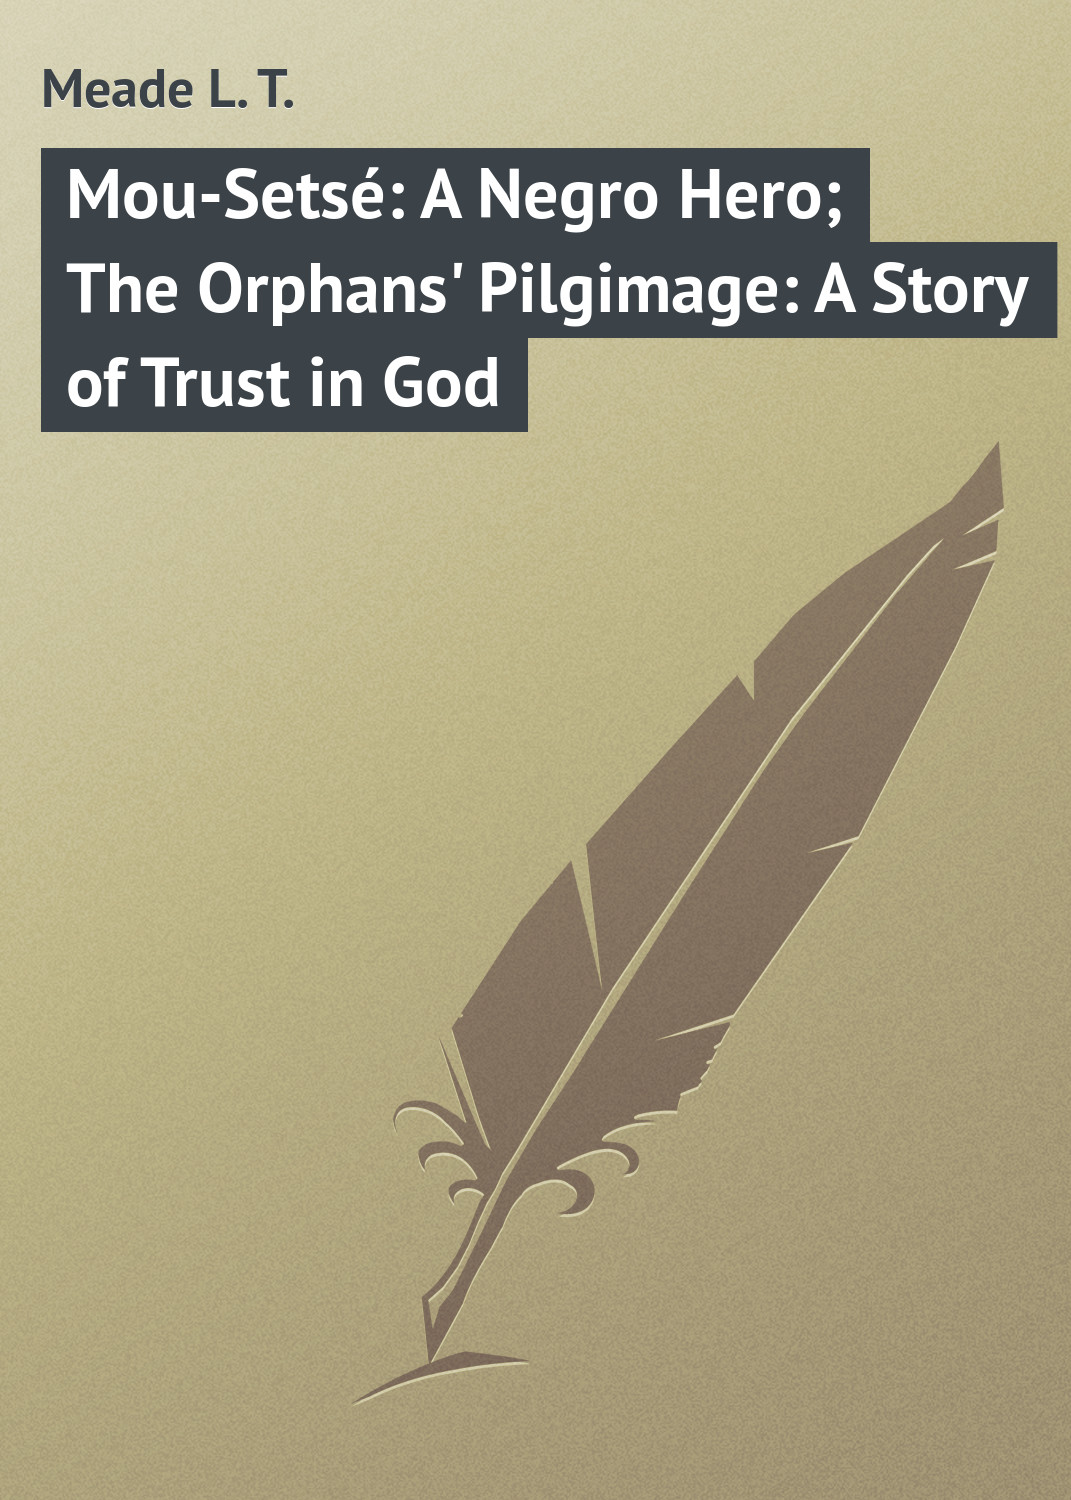 Meade L. T. Mou-Setsé: A Negro Hero; The Orphans' Pilgimage: A Story of Trust in God